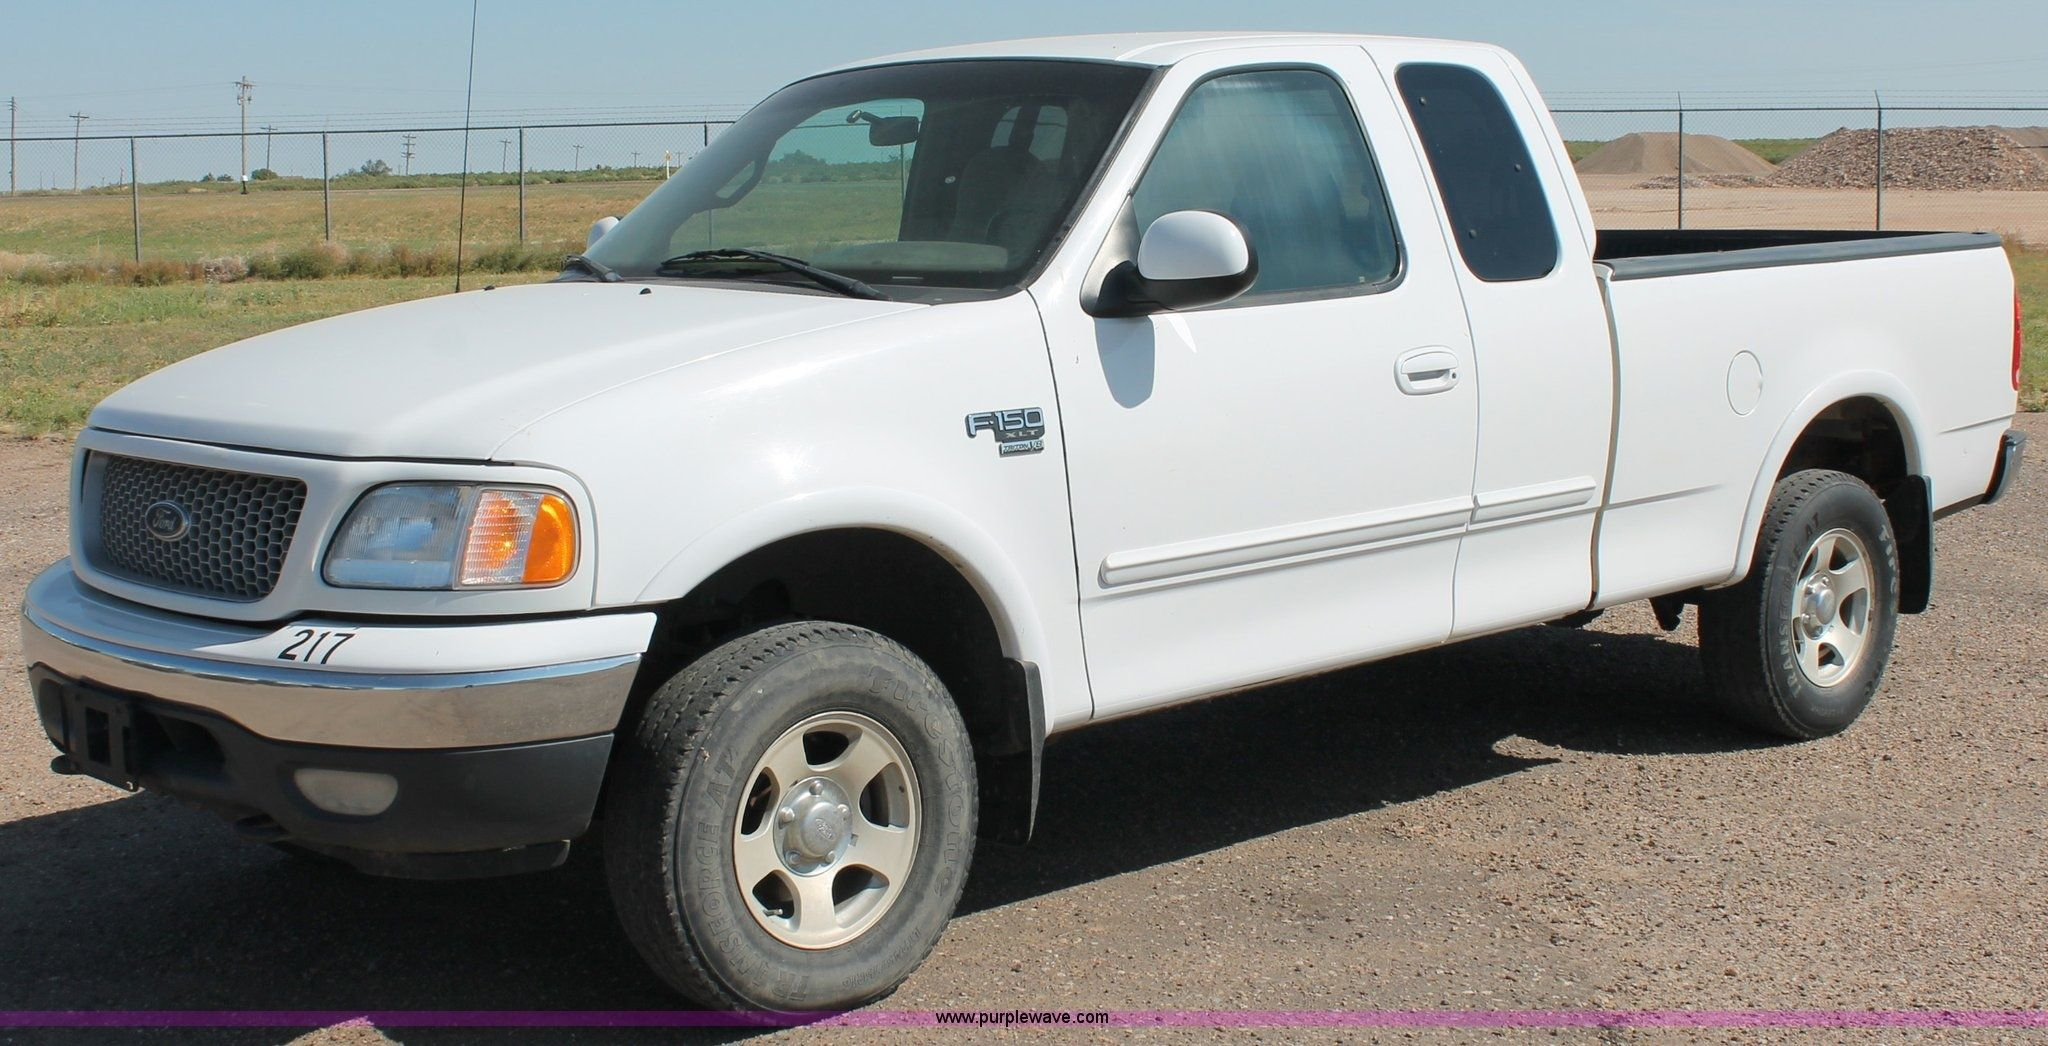 Best Of 1999 Ford F150 Extended Cab Https Jetsuv Com Best Of 1999 Ford F150 Extended Cab Fordcars 1999fordf150extendedcab4x4 Extended Cab Ford F150 F150